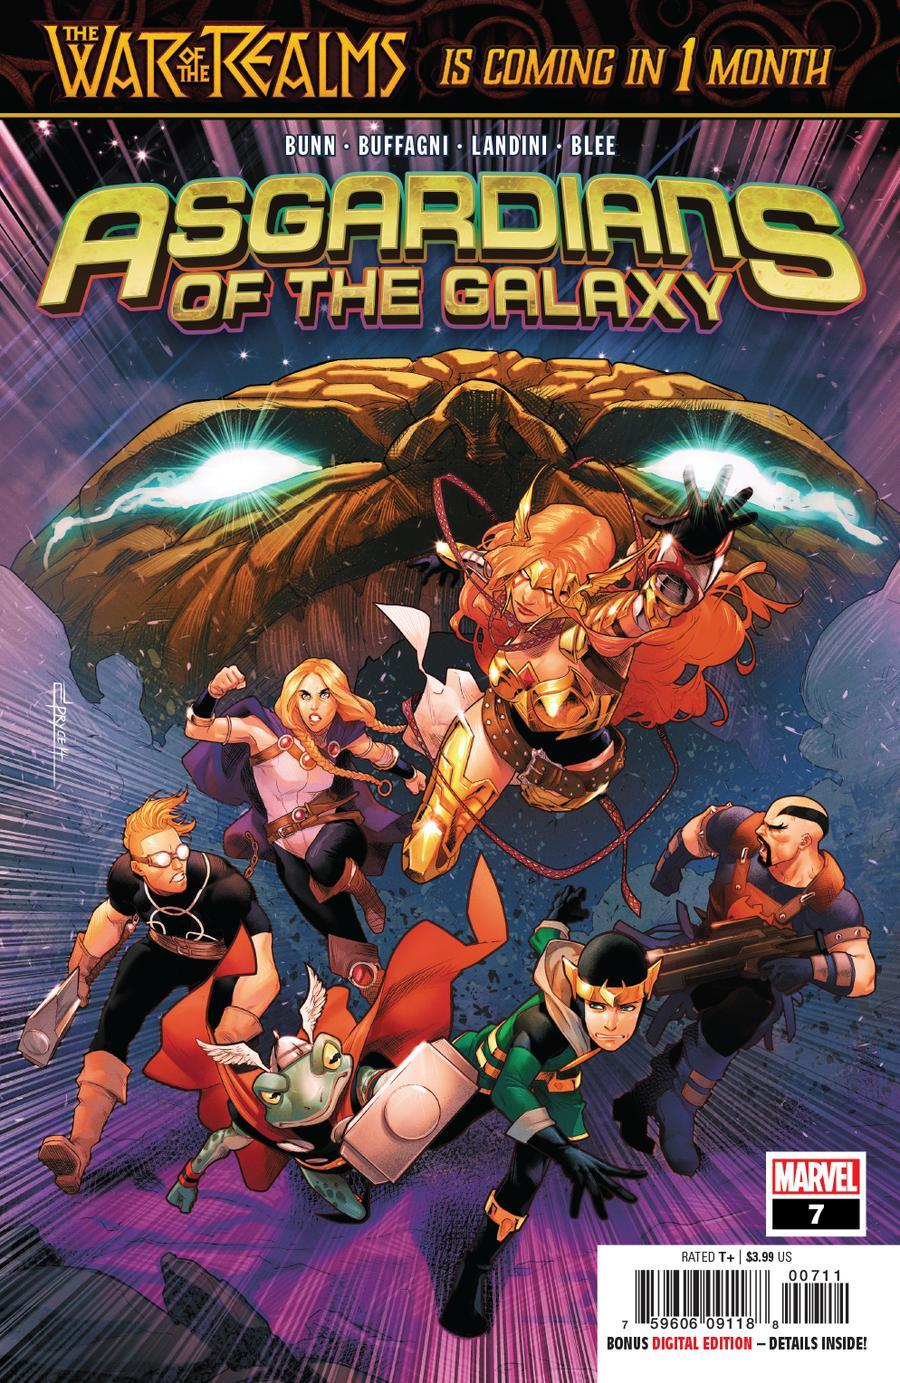 Asgardians of the Galaxy Vol. 1 #7